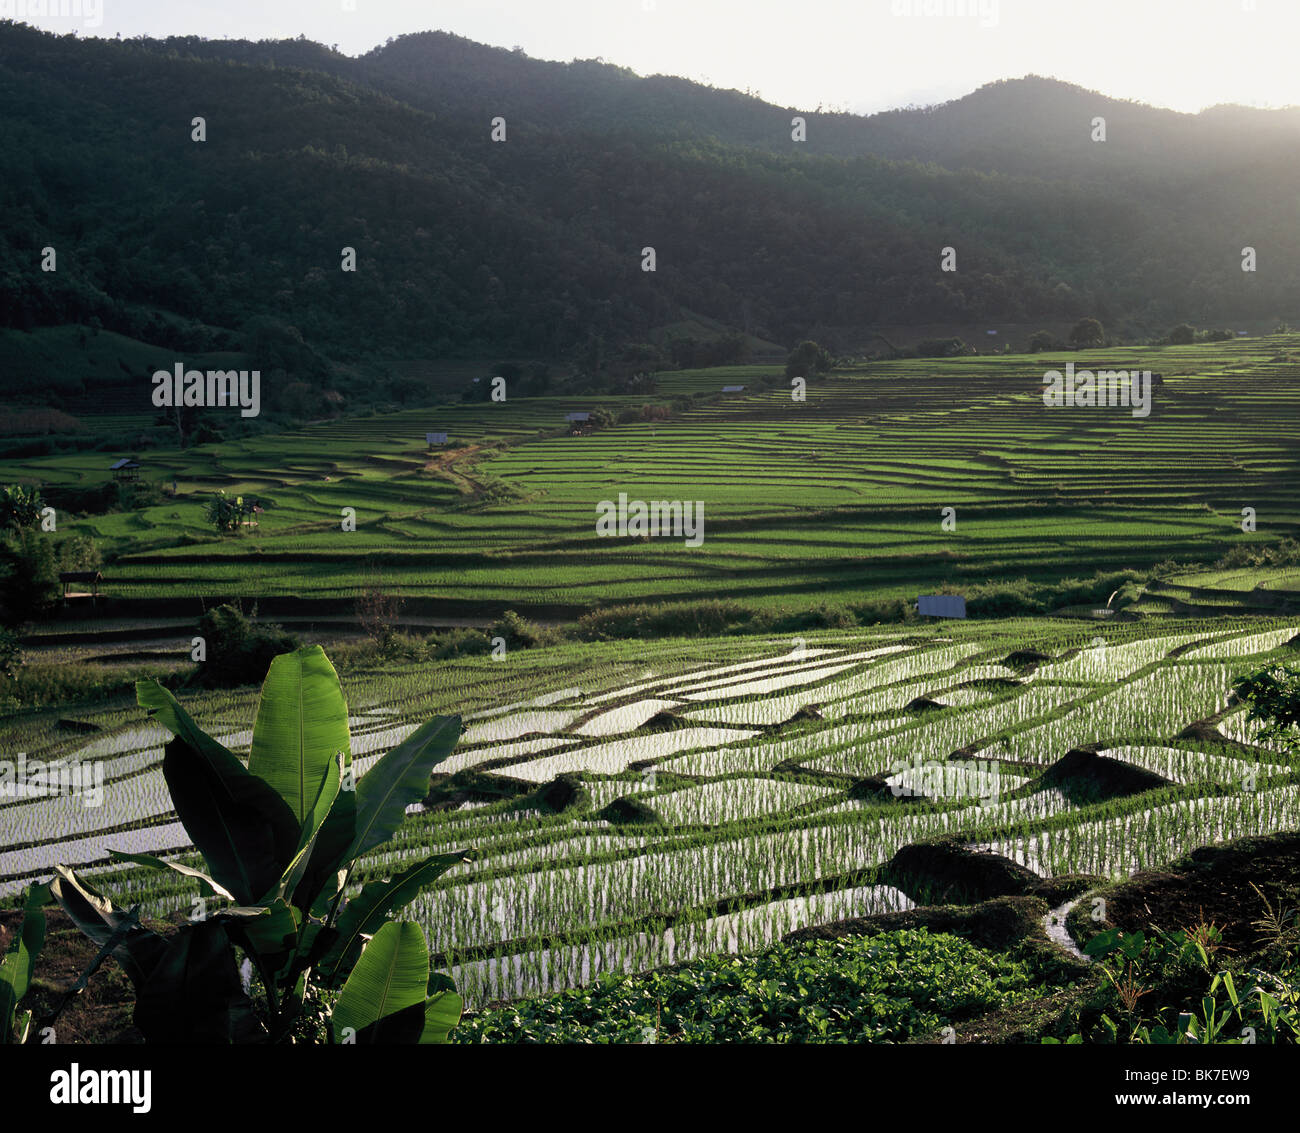 Terraced ricefields, Doi Inthanon, Chiang Mai, Thailand, Southeast Asia, Asia - Stock Image